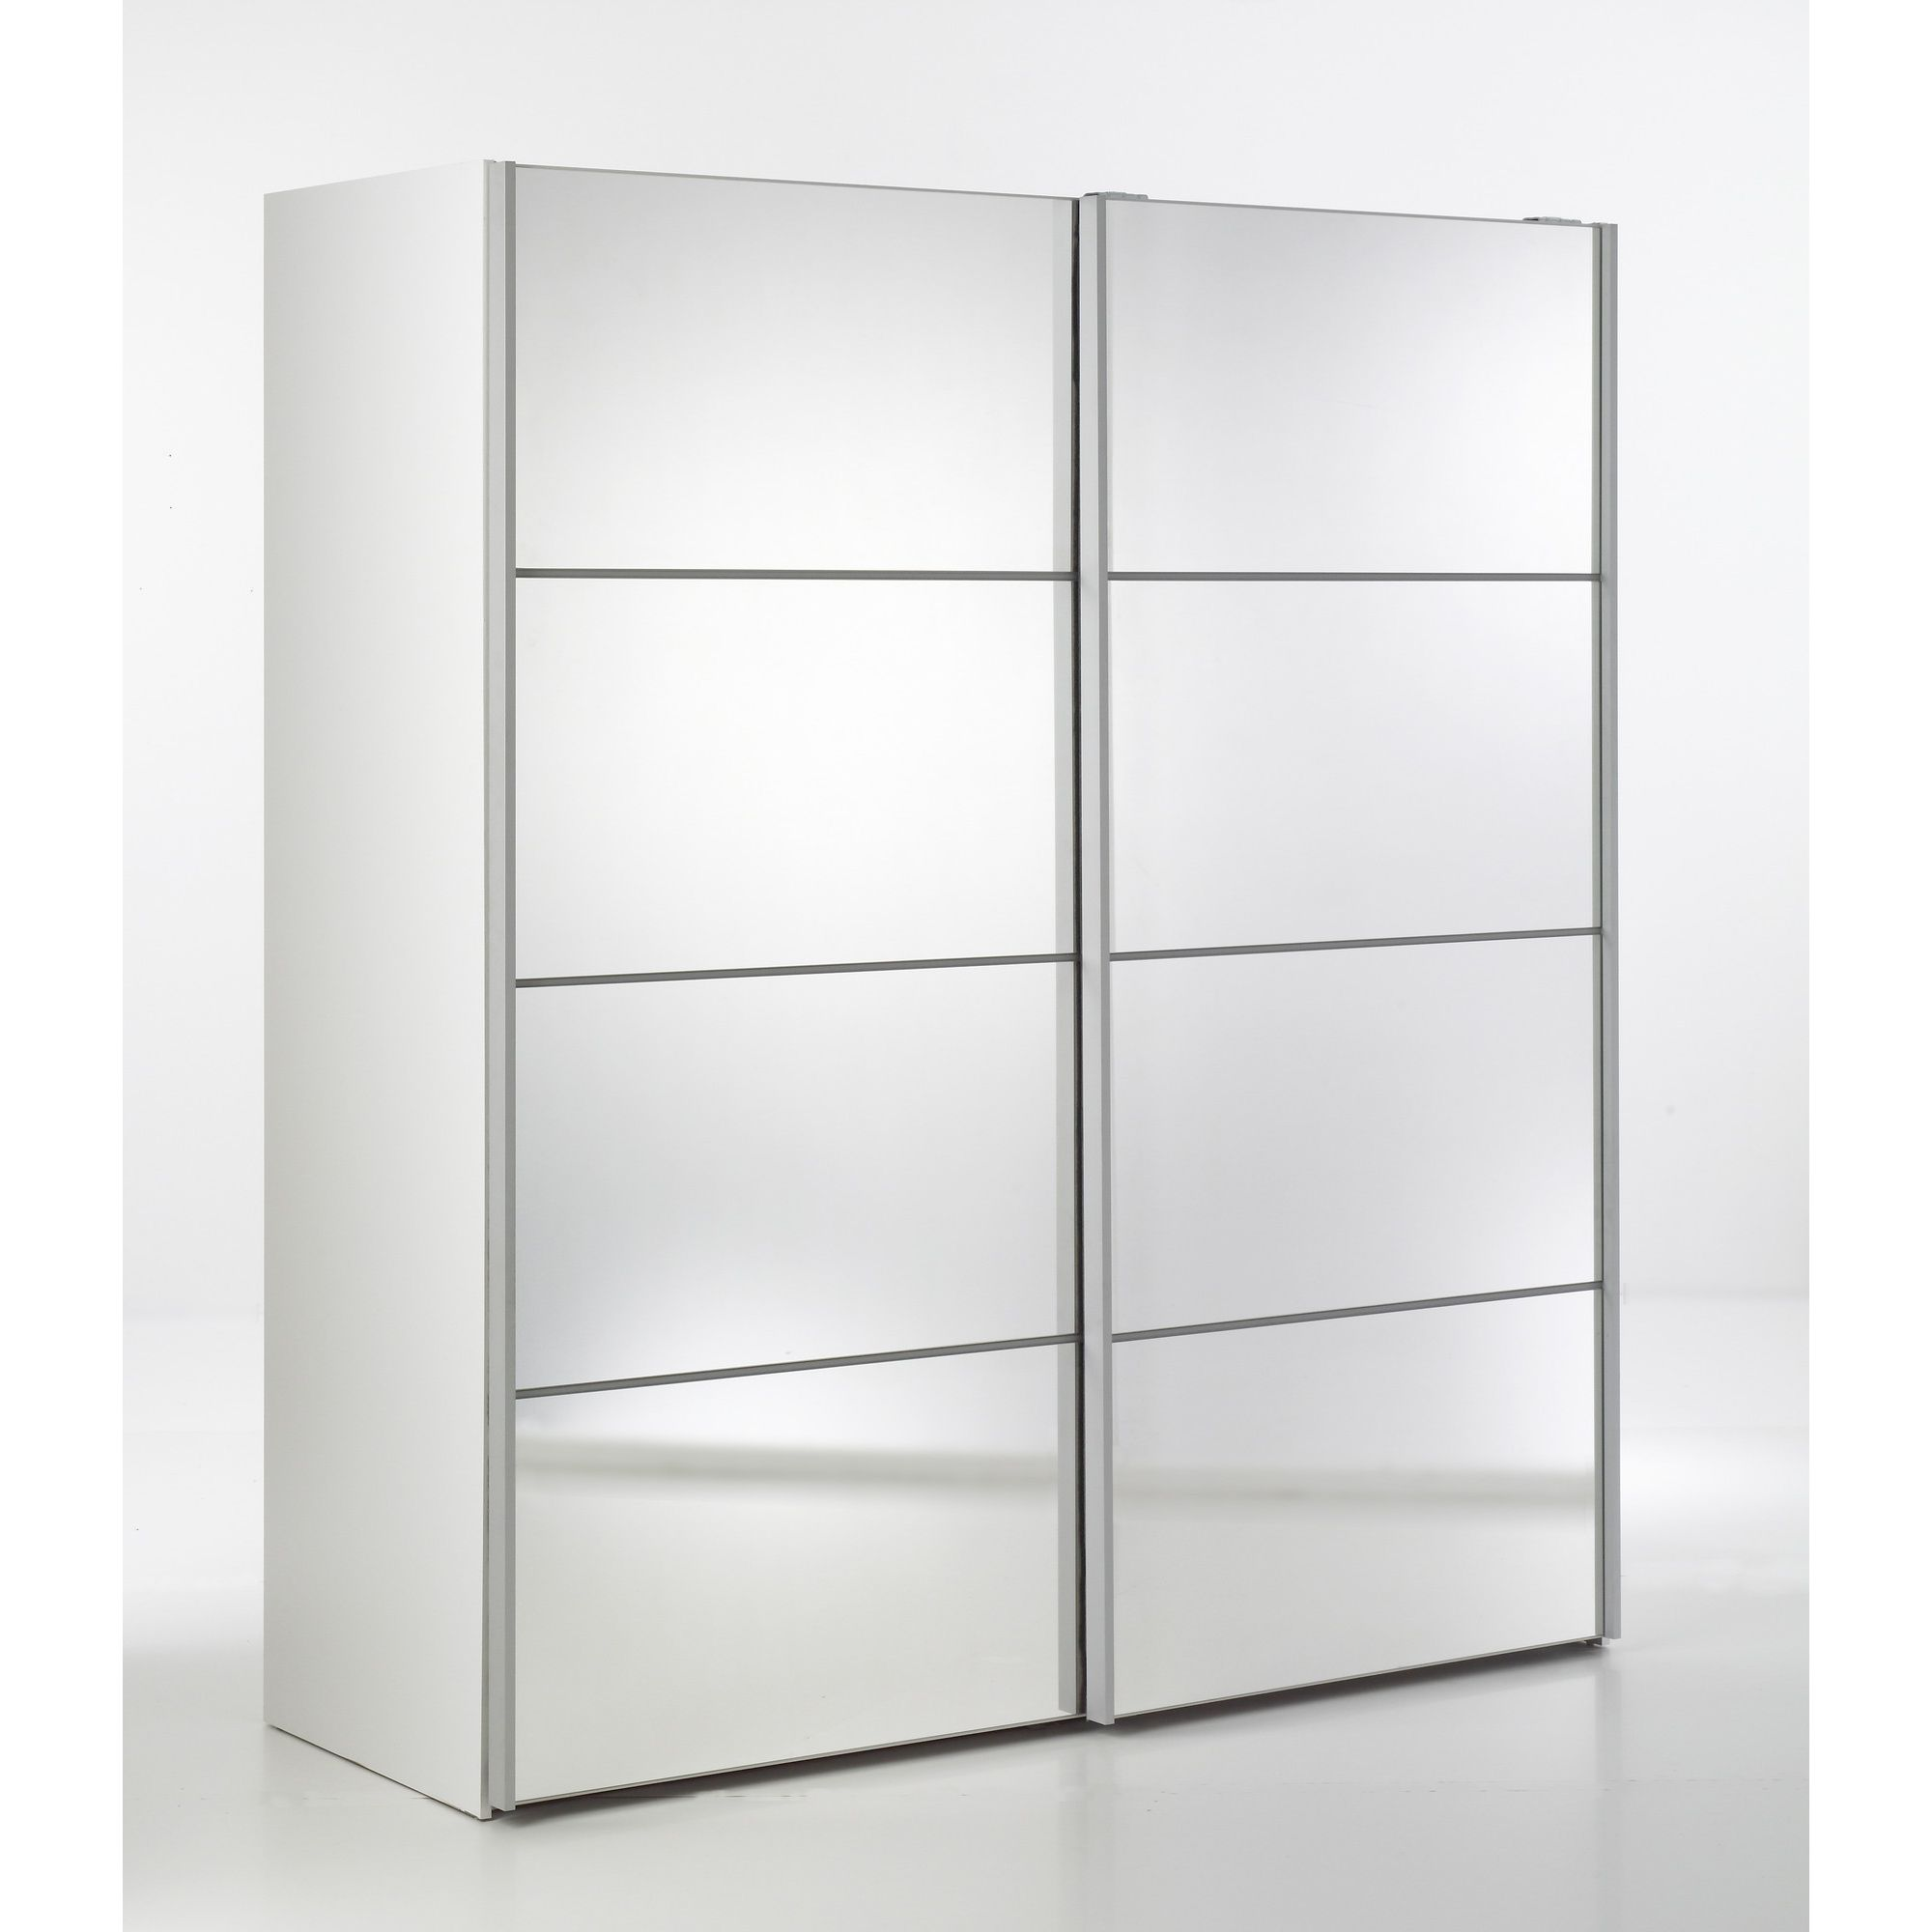 Tvilum Verona Sliding Mirrored Wardrobe - White at Tesco Direct